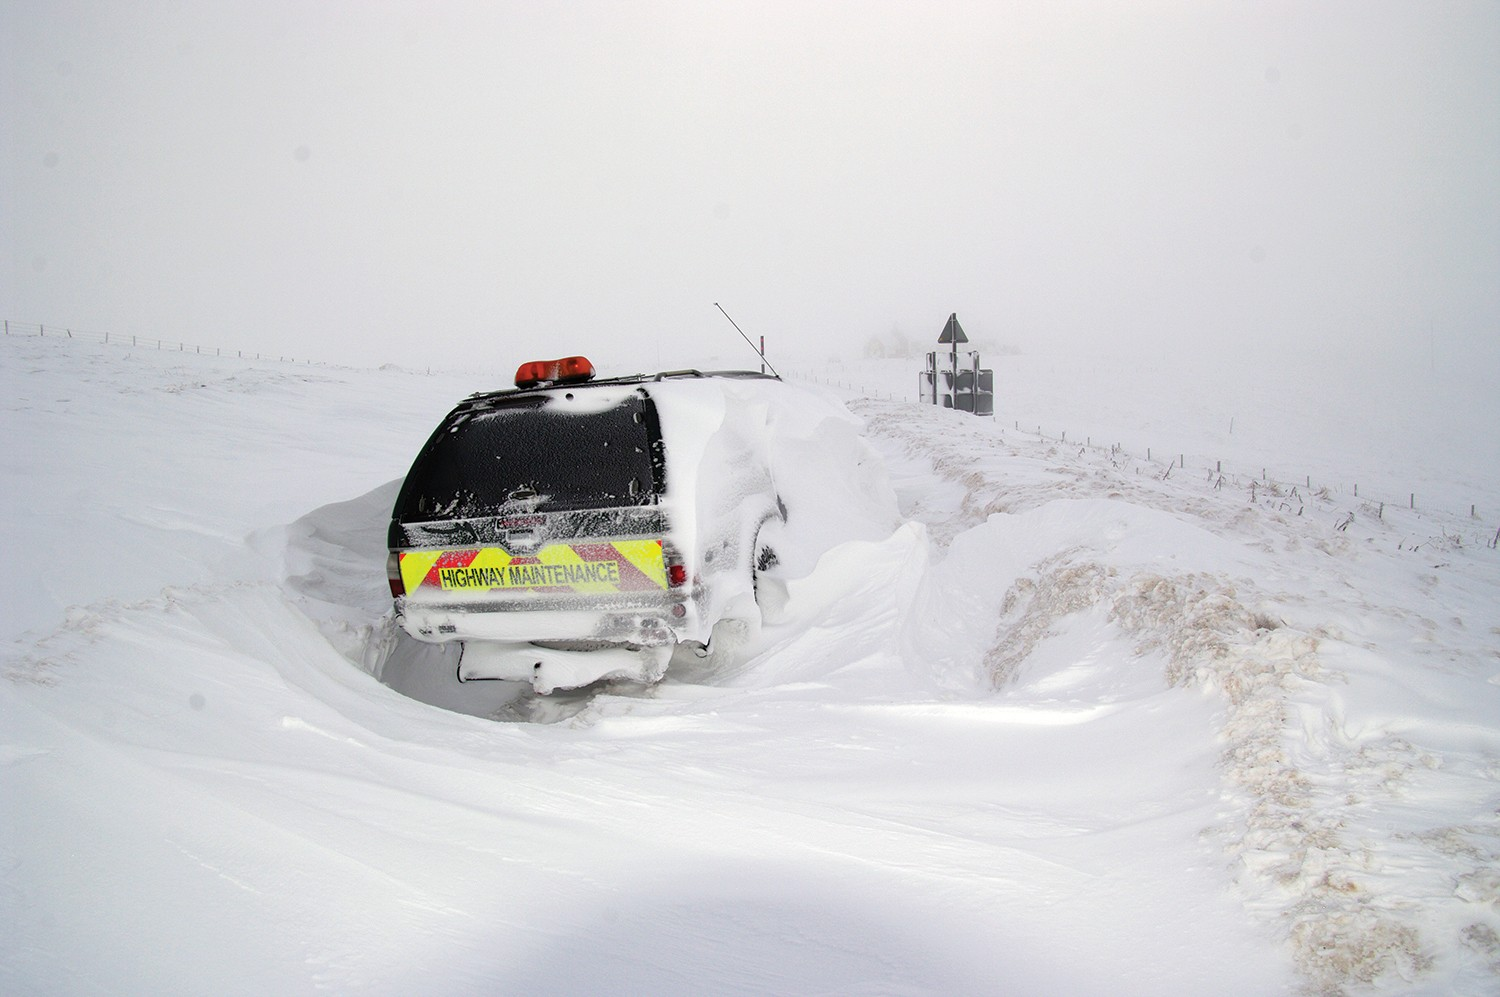 A highway maintenance vehicle covered in a snow drift on the road.